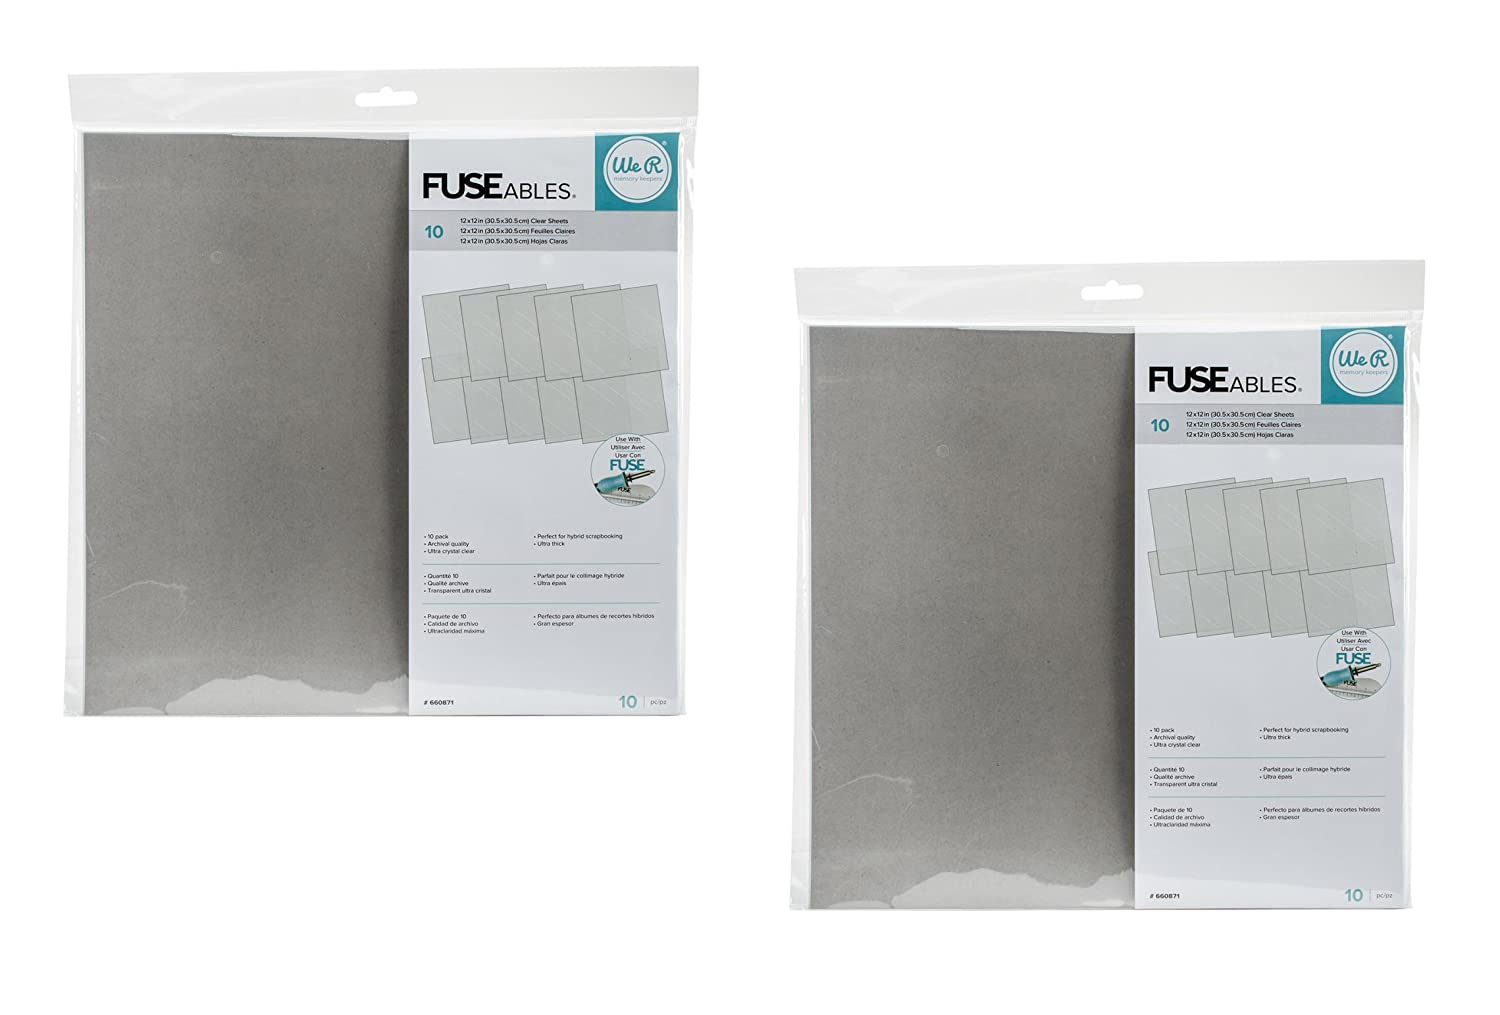 We R Memory Keepers 10 Piece Fuseables Clear Sheets, 12 x 12 (2 Pack) 12 x 12 (2 Pack)